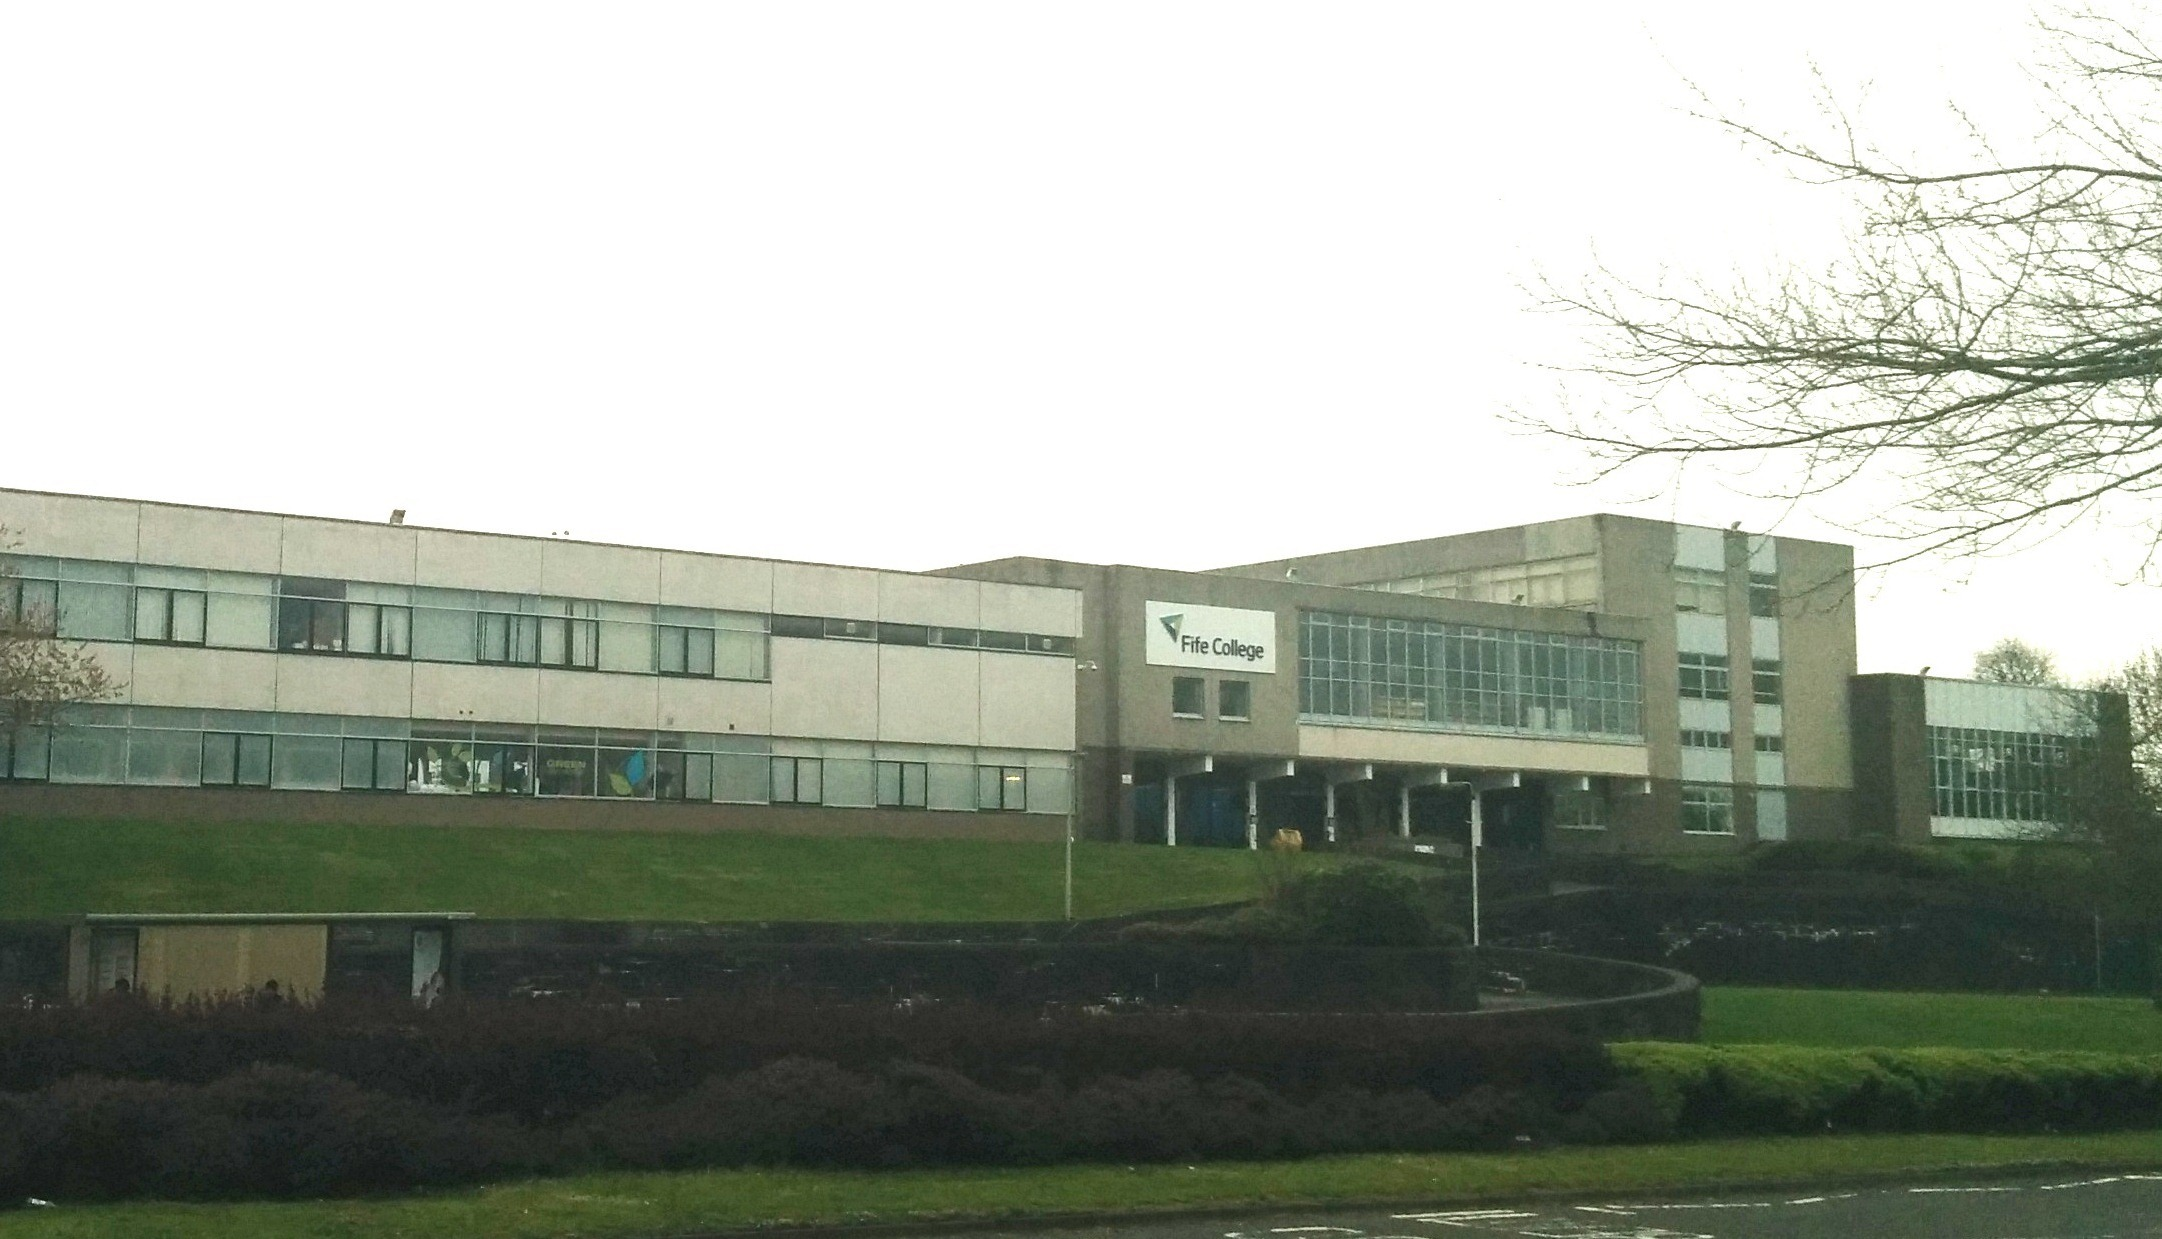 The current Fife College campus in Dunfermline needs millions of pounds of repair